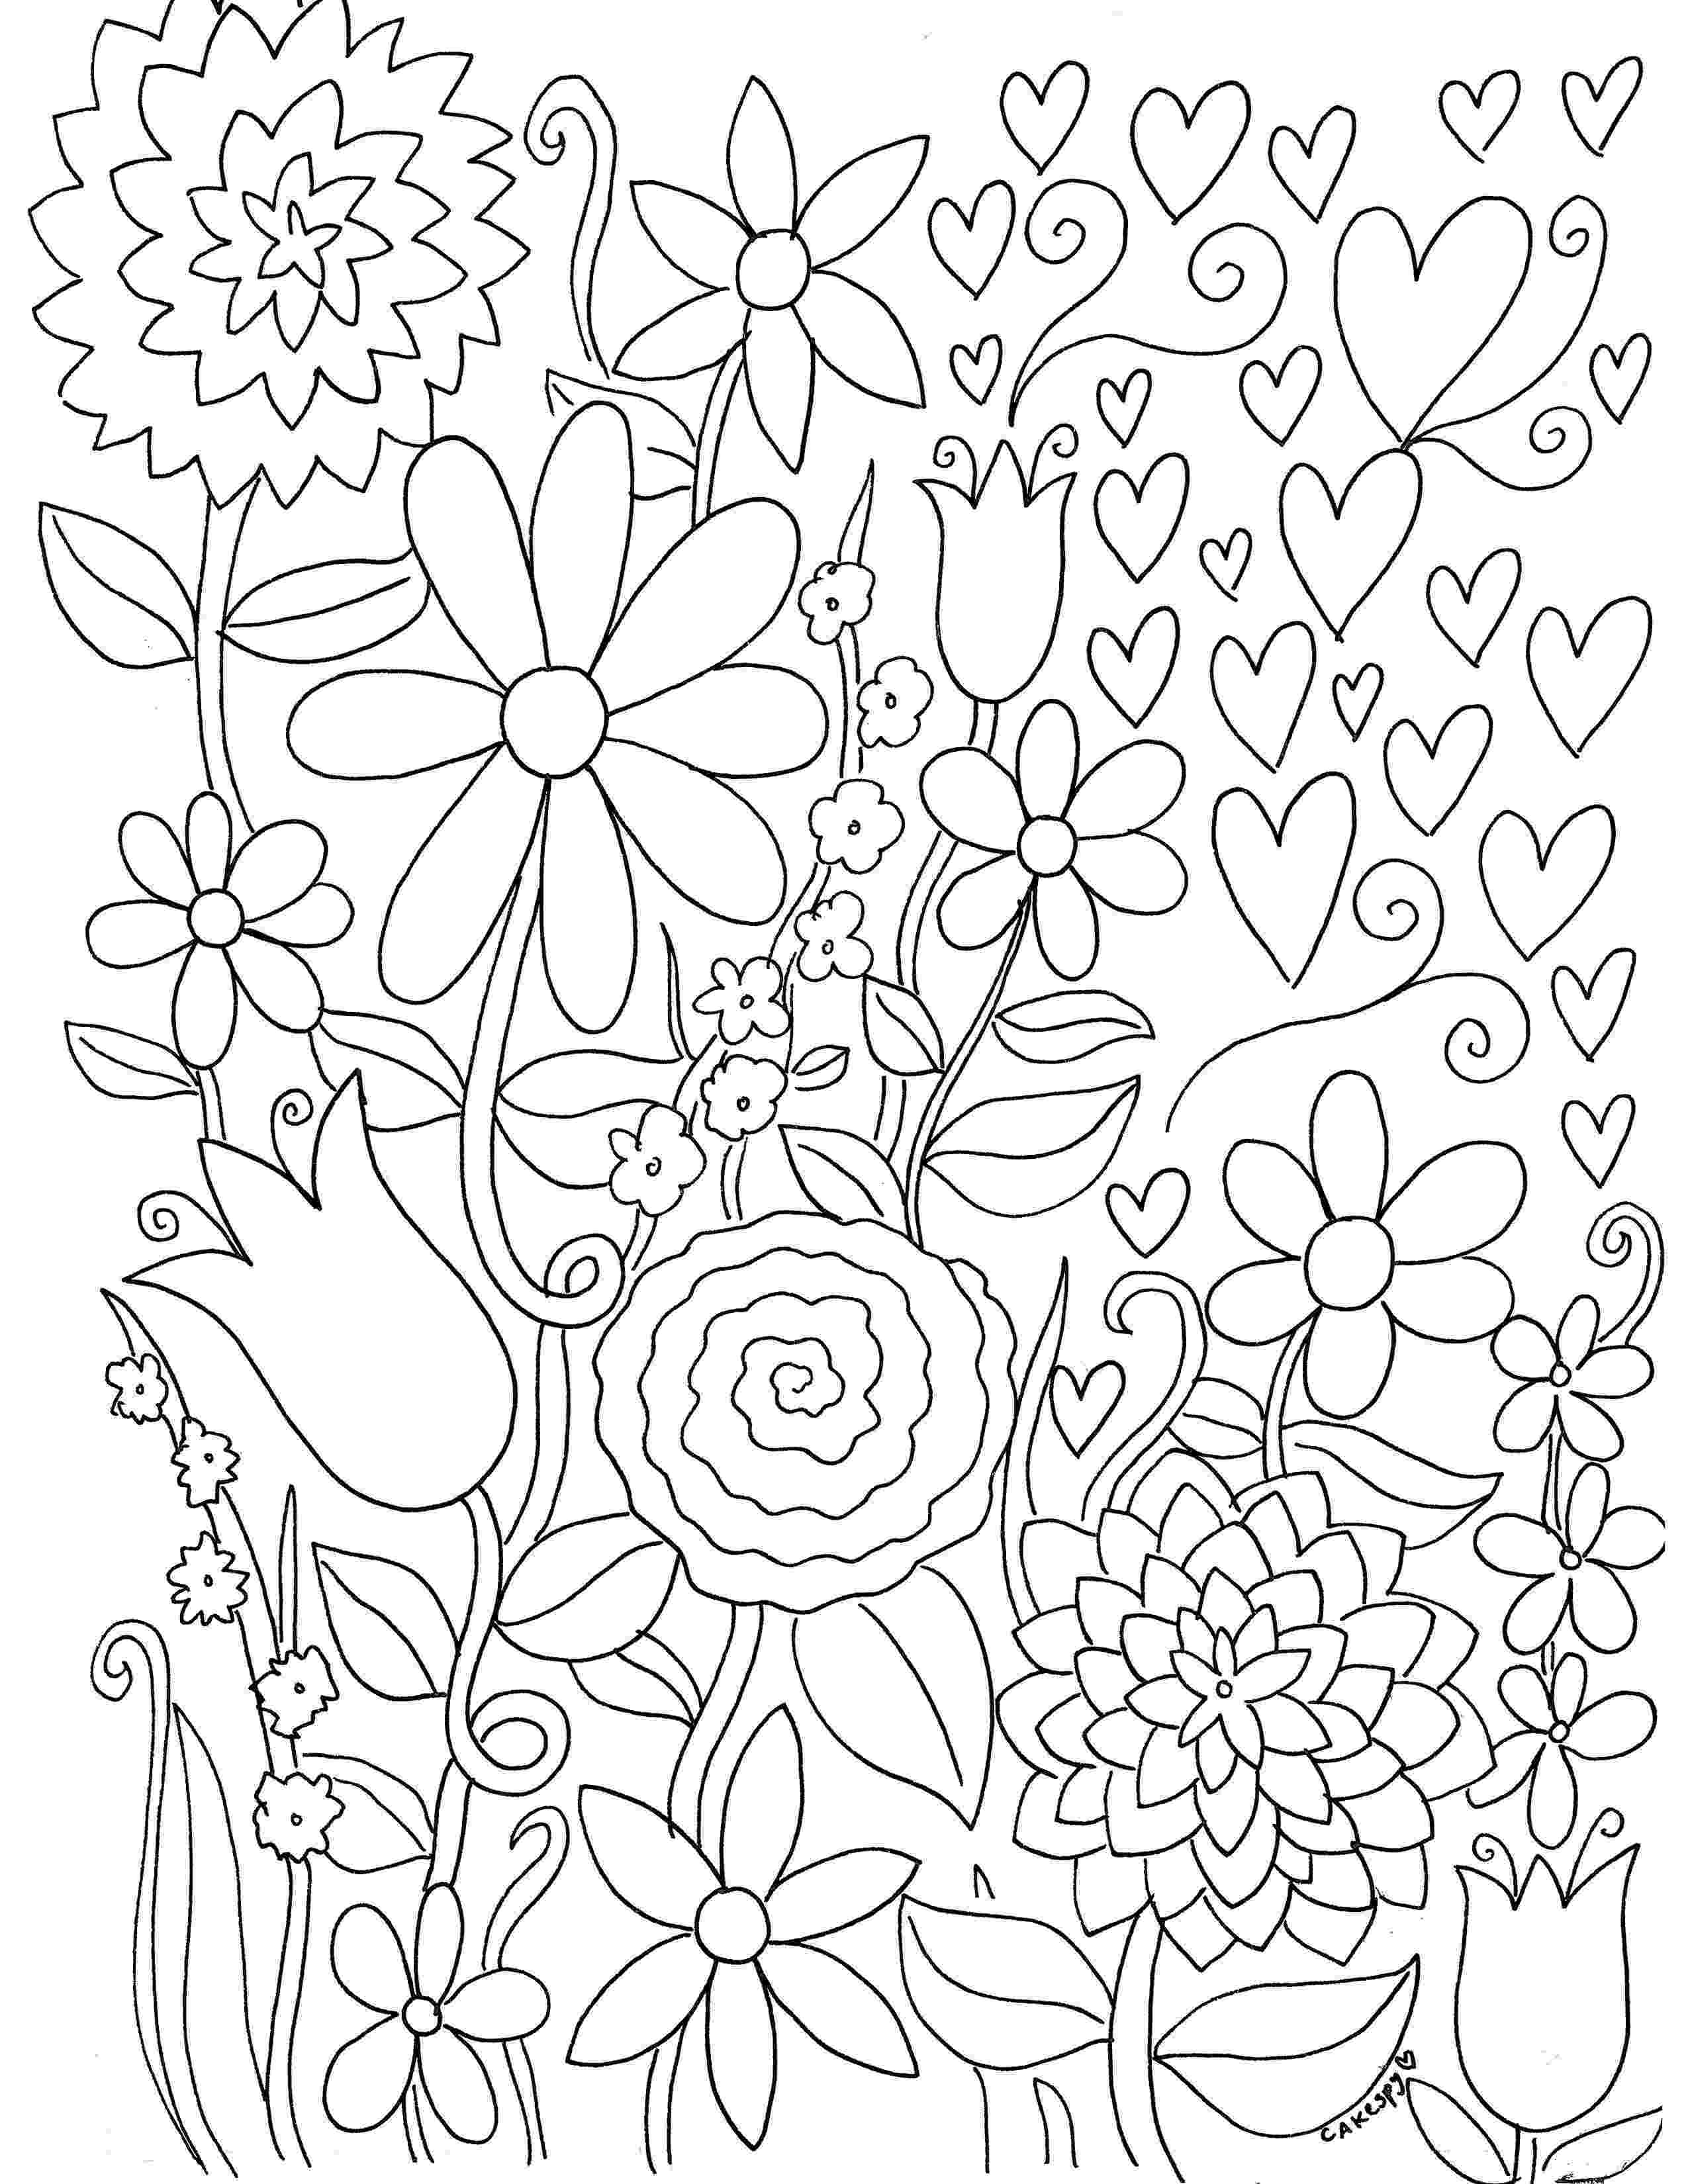 coloring for adults online free printable coloring pages for adults 15 free designs for free coloring adults online